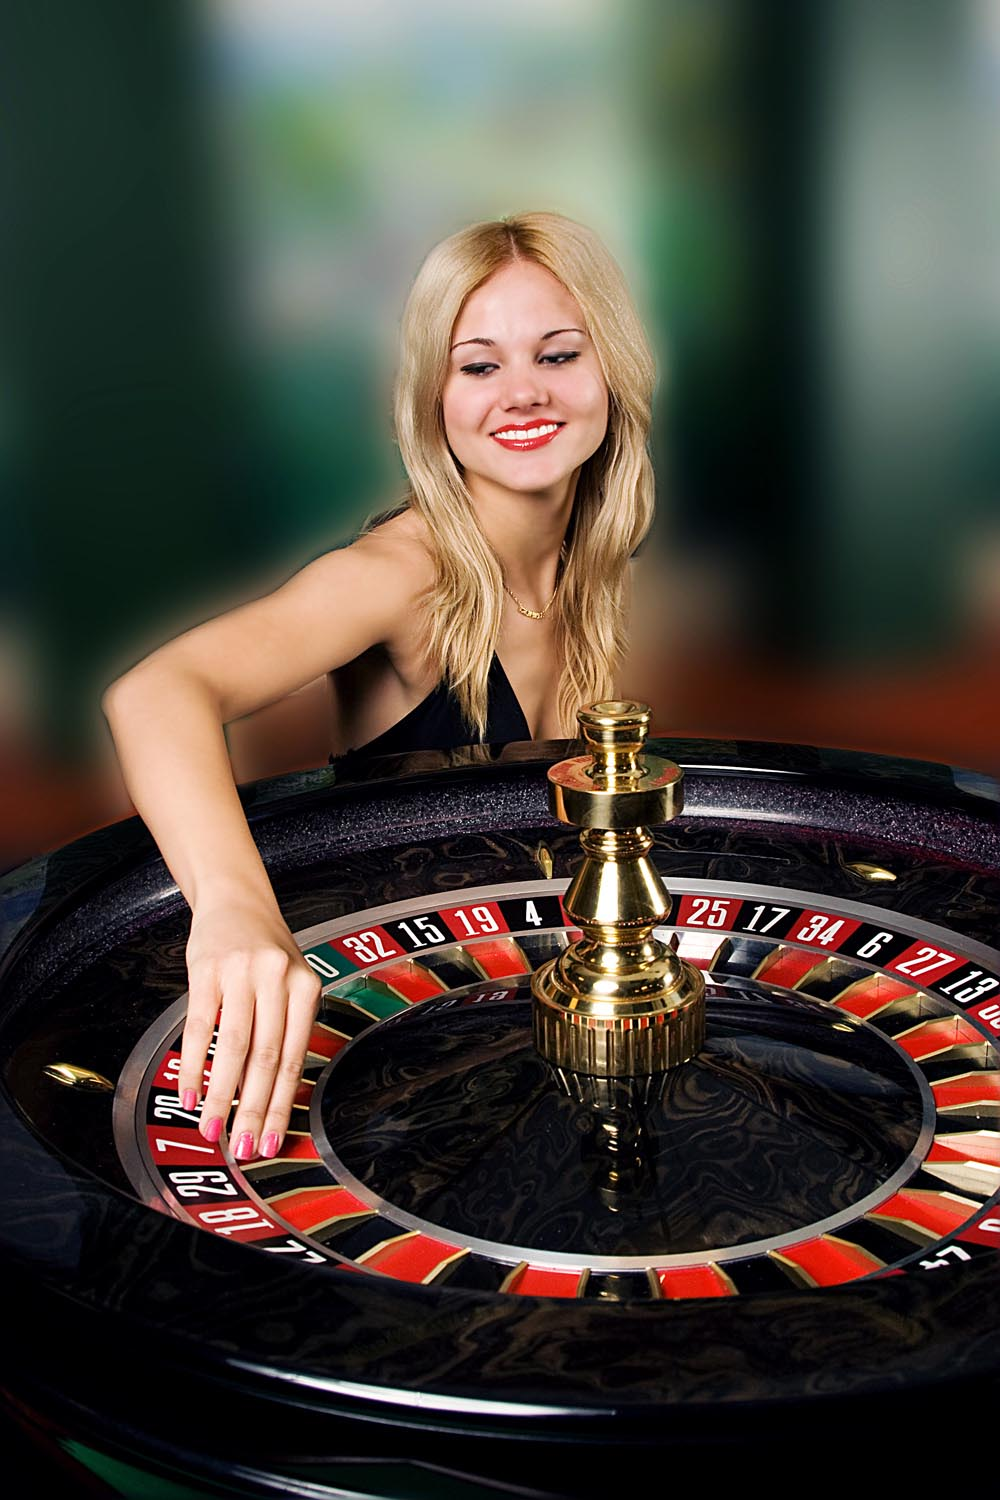 casino online for free szizling hot